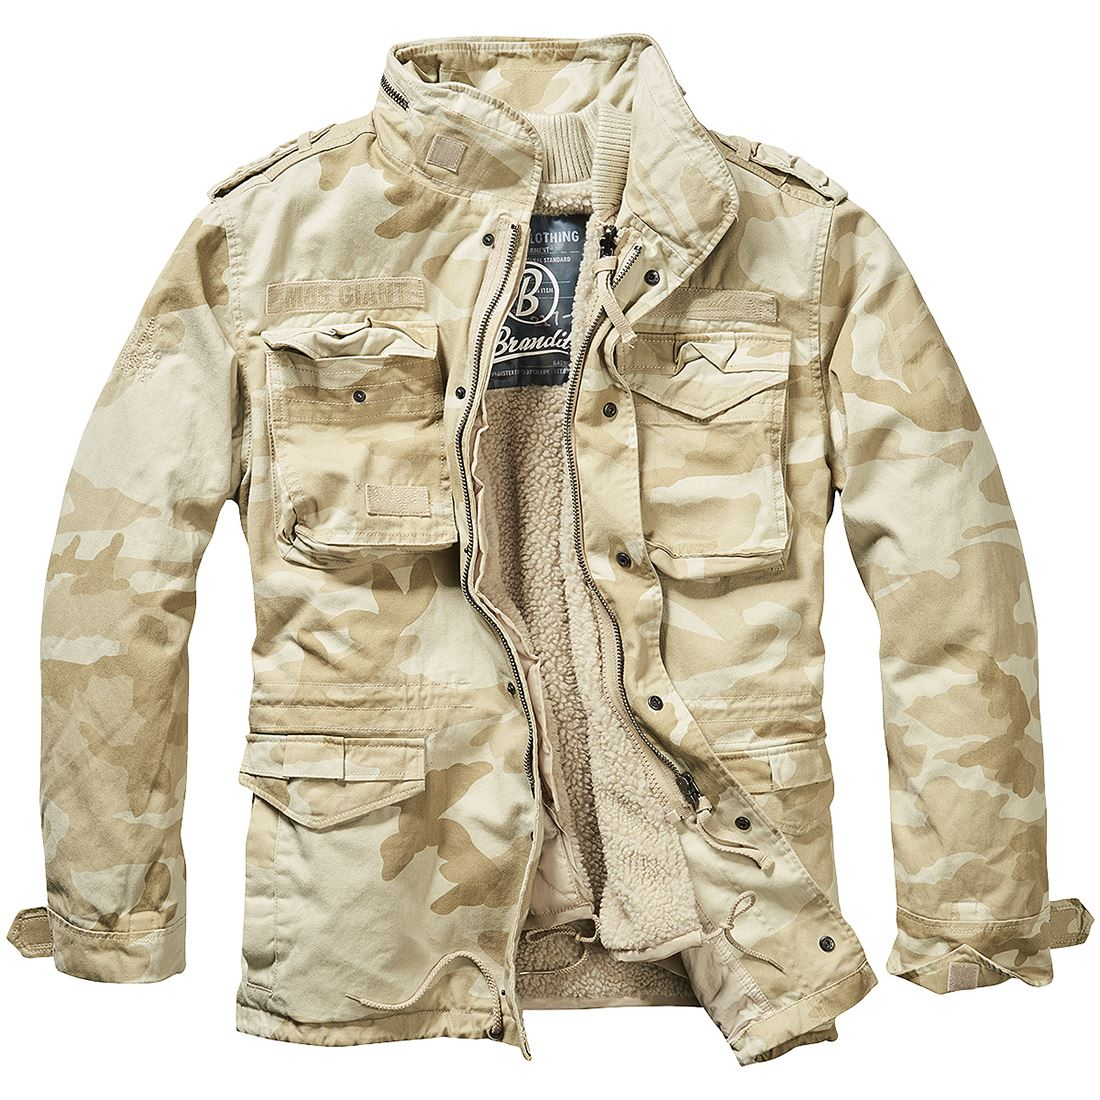 Details about BRANDIT M65 GIANT MENS MILITARY PARKA US ARMY JACKET WINTER ZIP OUT LINER OLIVE